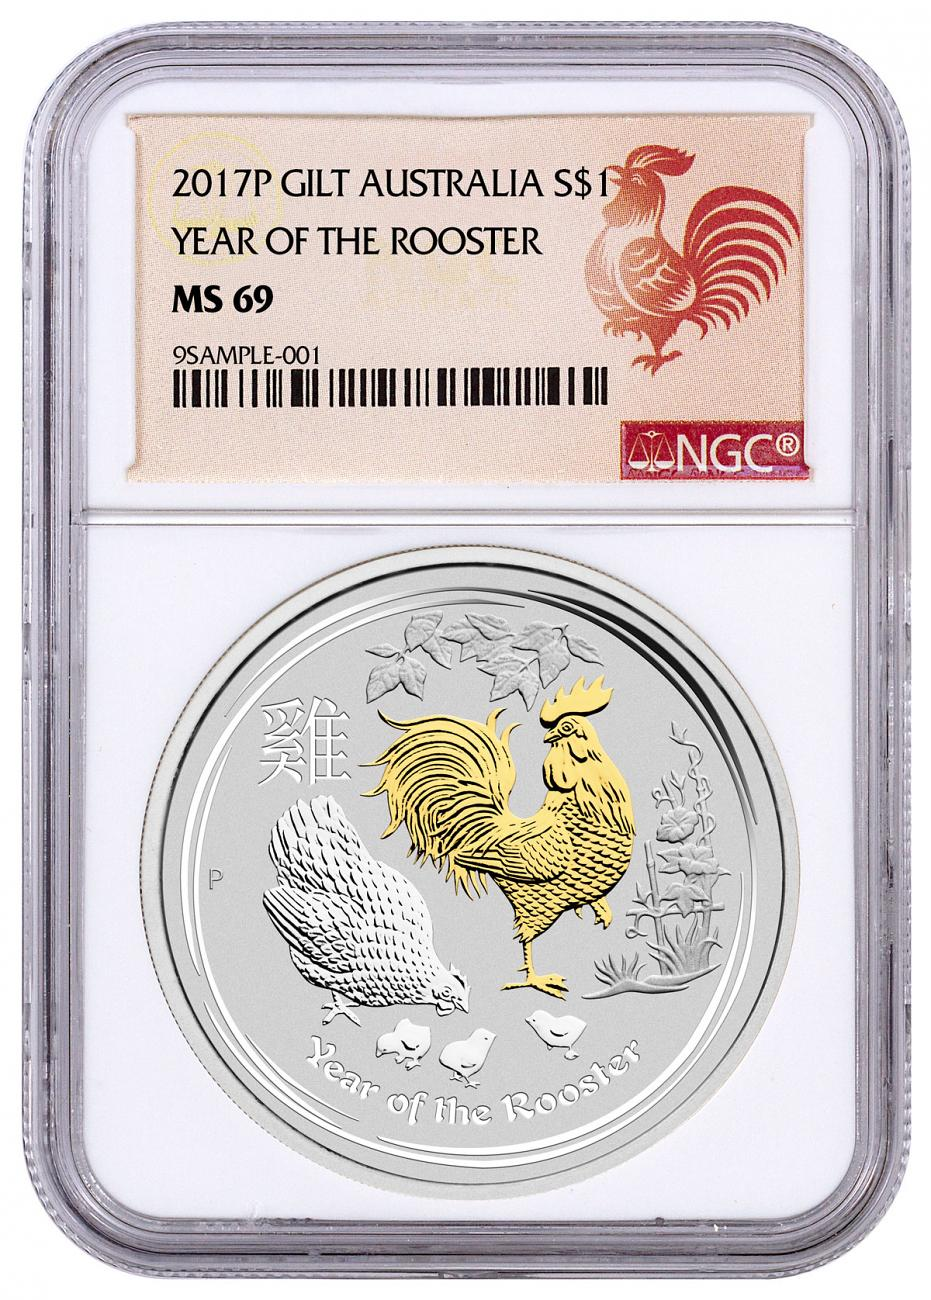 2017 Australia Year of the Rooster 1 oz Silver Lunar (Series 2) Gilt Proof $1 Coin NGC MS69 Rooster Label